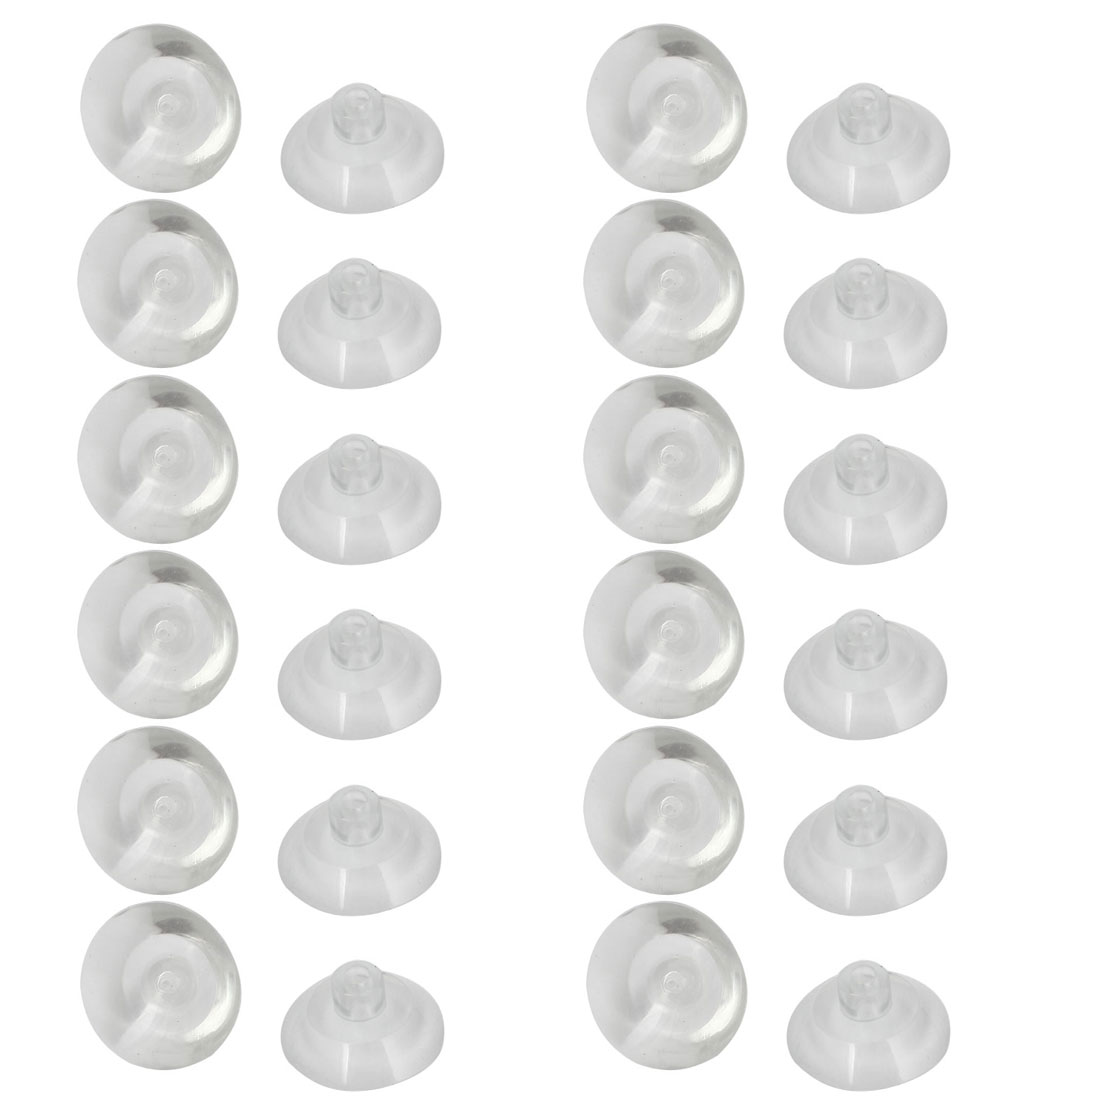 Household 20mm Diameter Clear Replacement Suction Cups 24Pcs